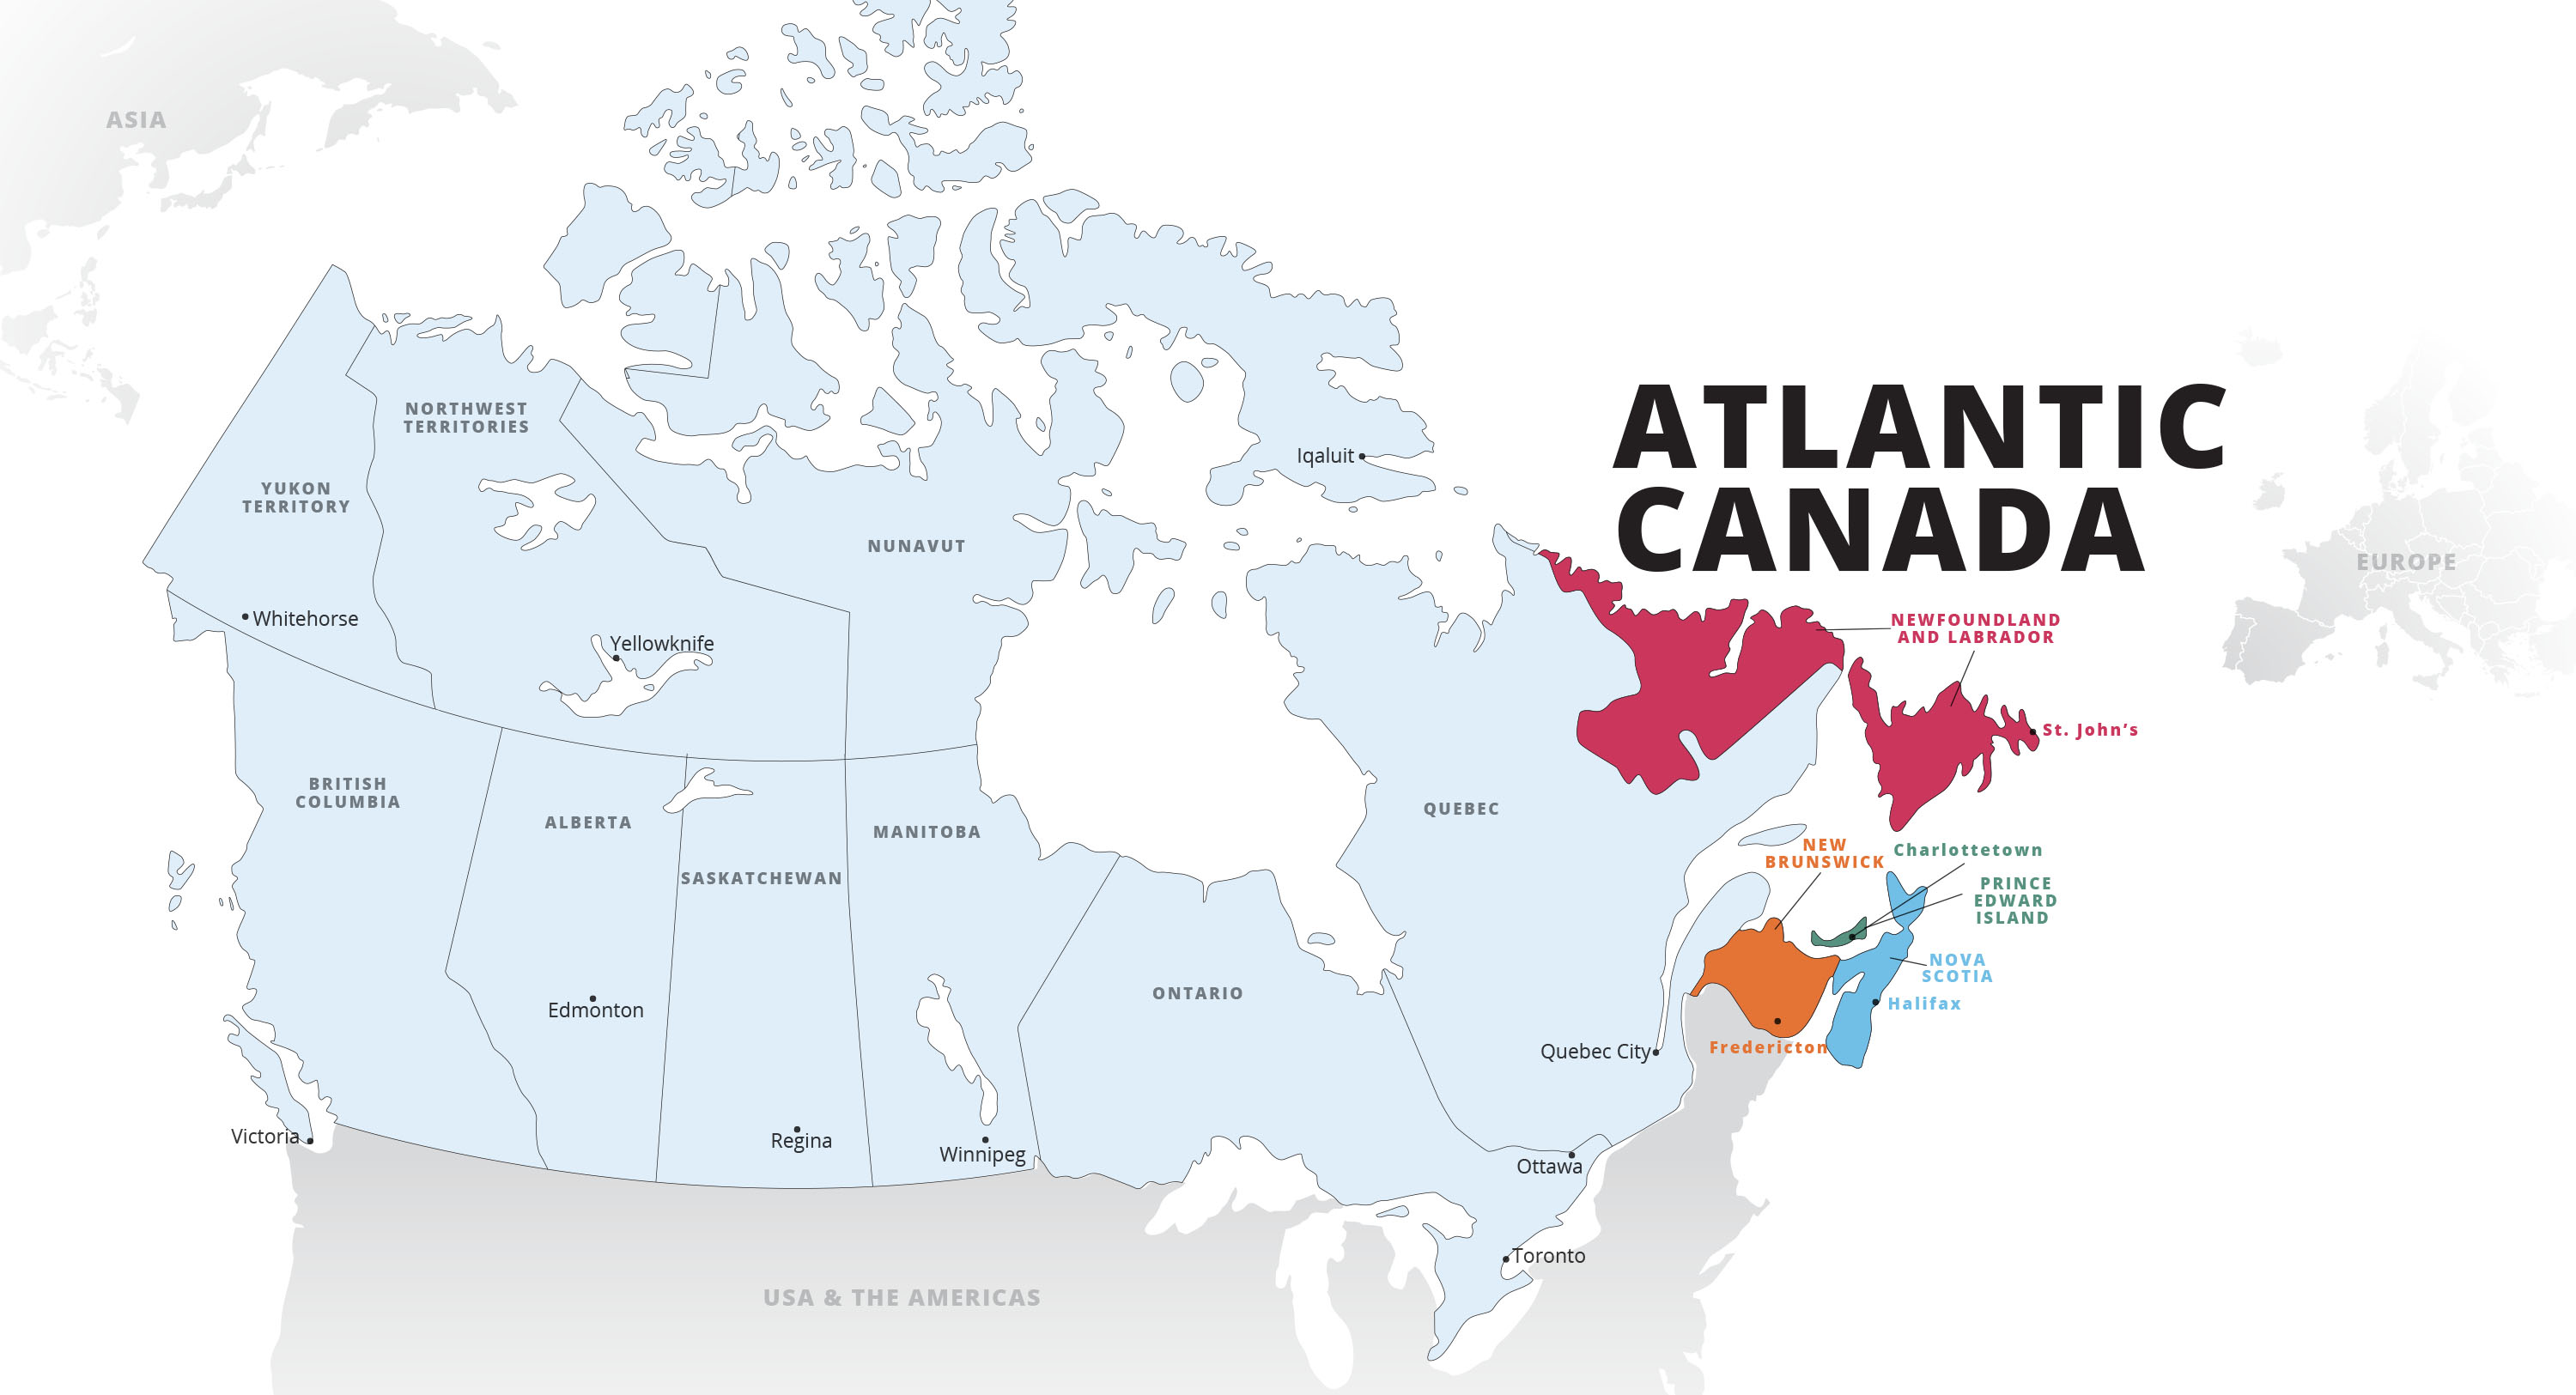 Map of Canada with Atlantic Canada provinces highlighted